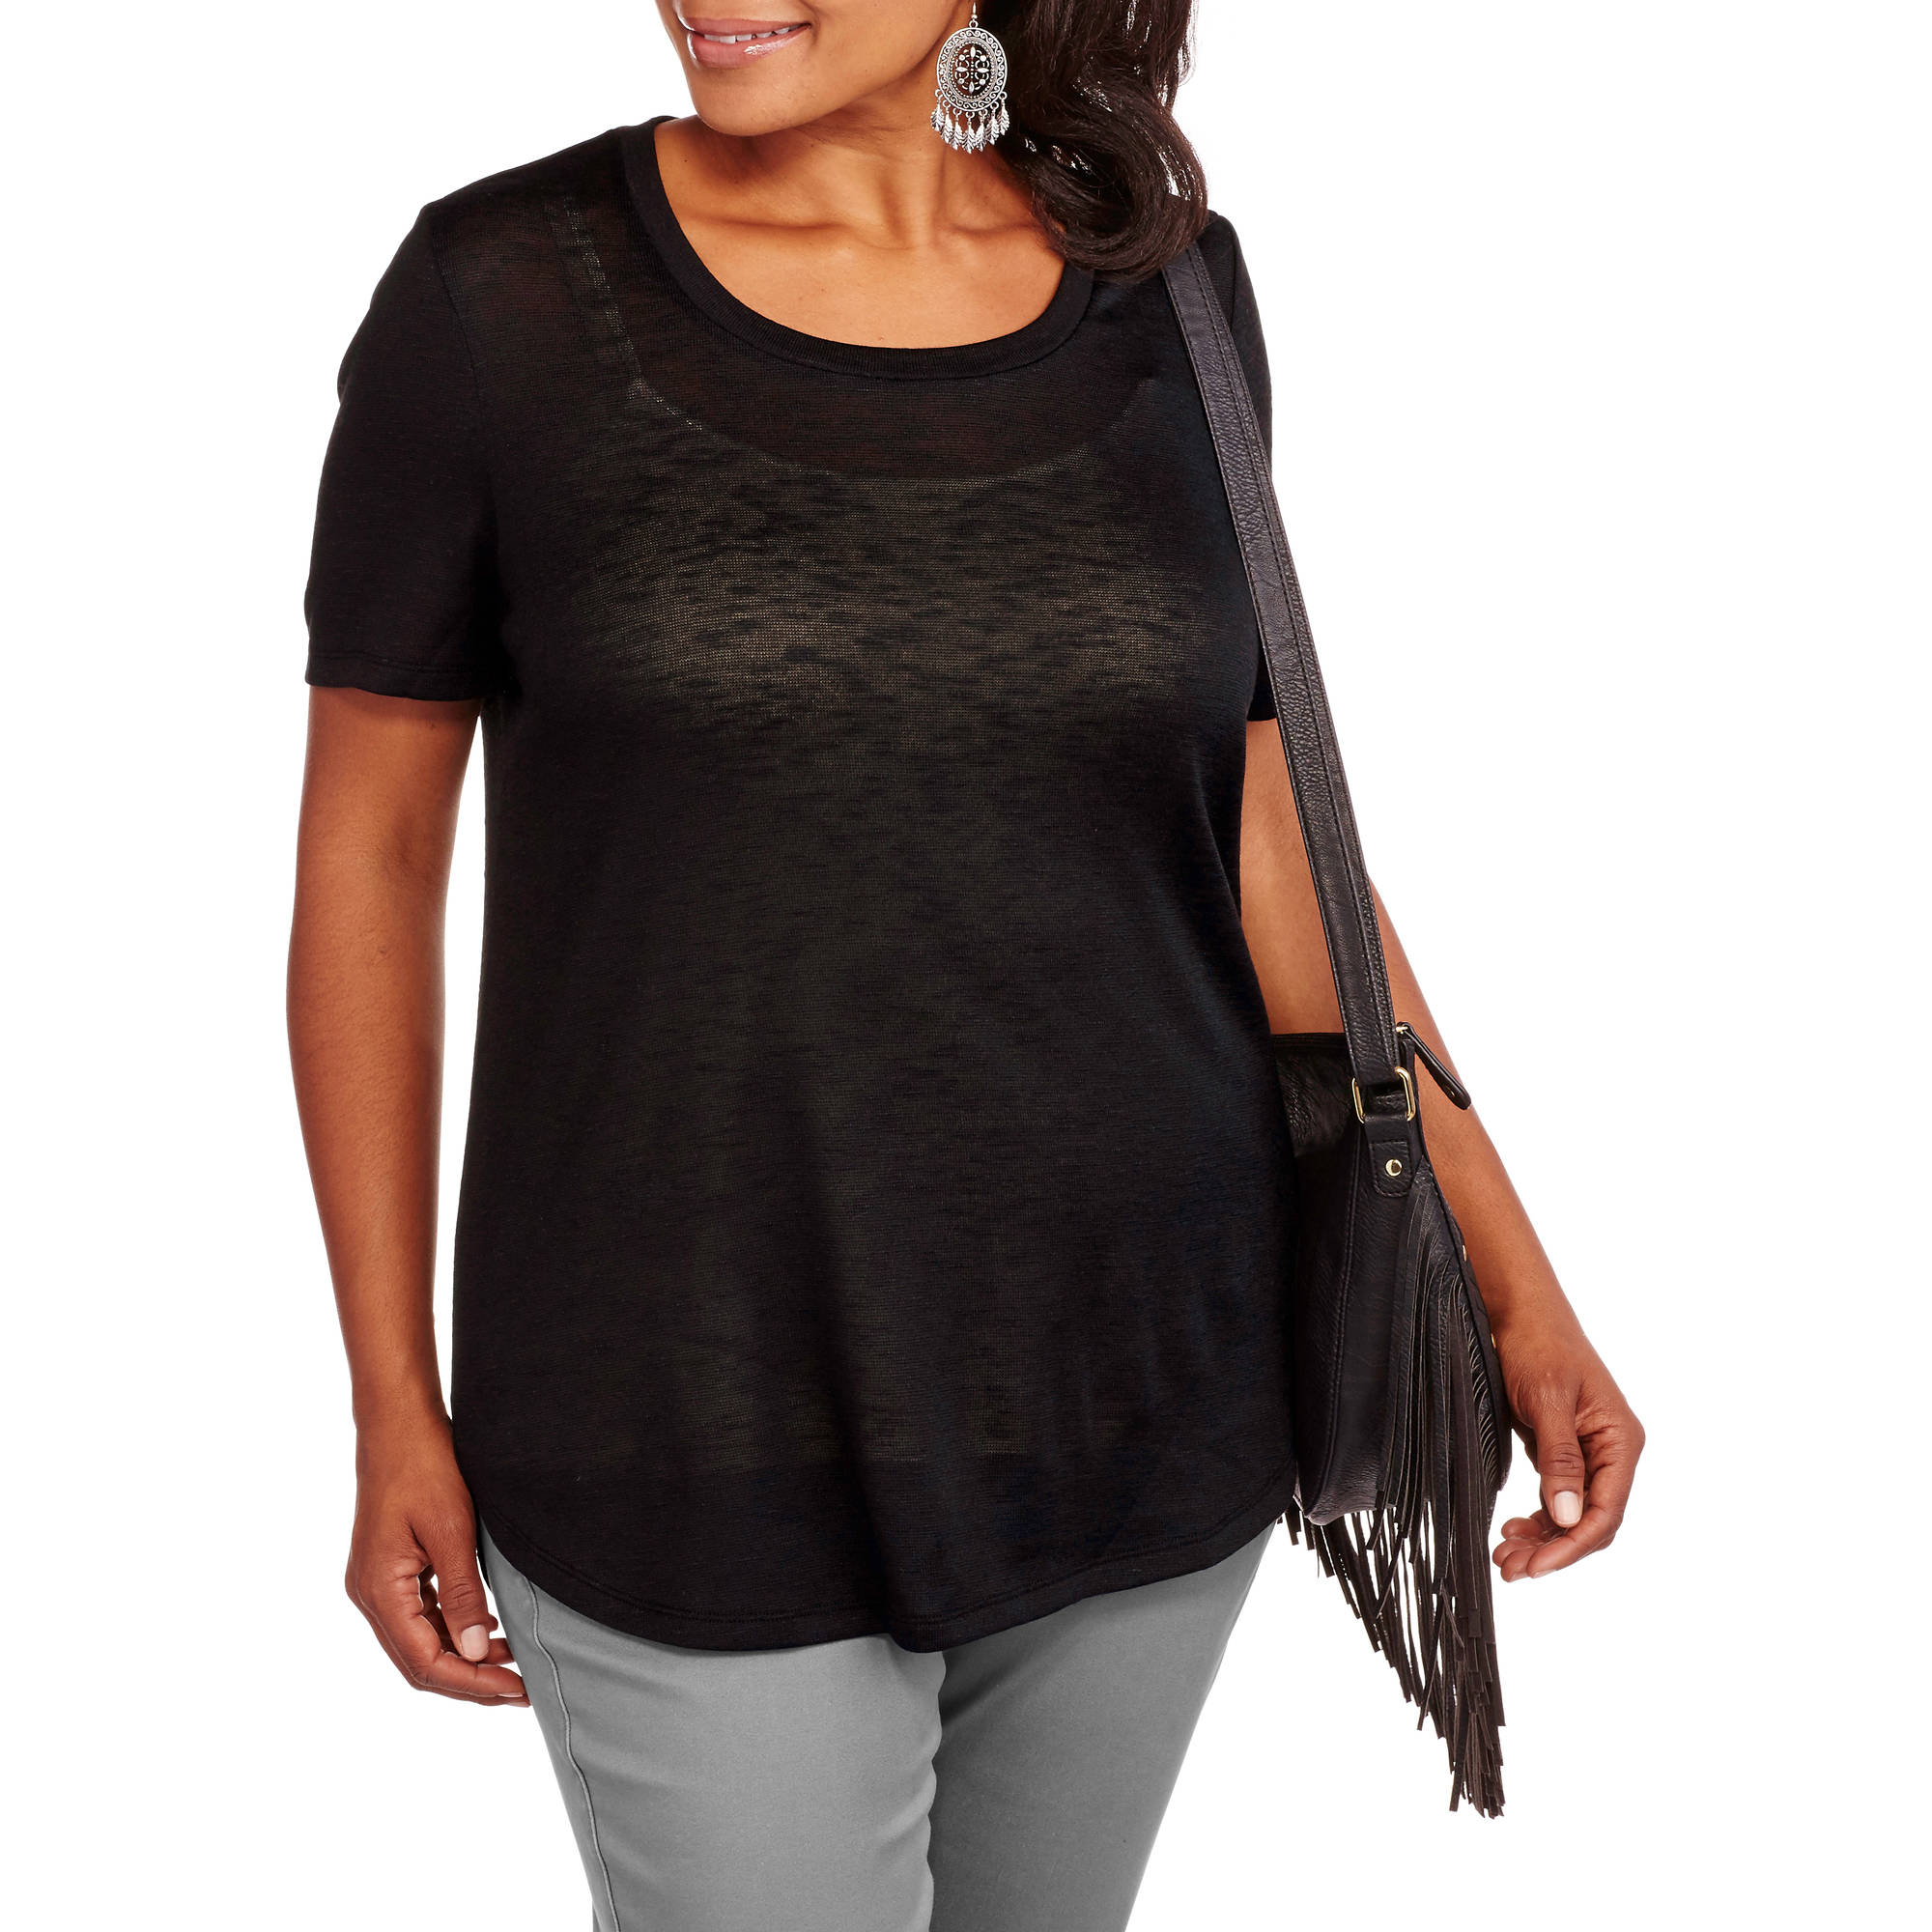 Faded Glory Women's Plus-Size Hacci Crew Knit Top Short Sleeve